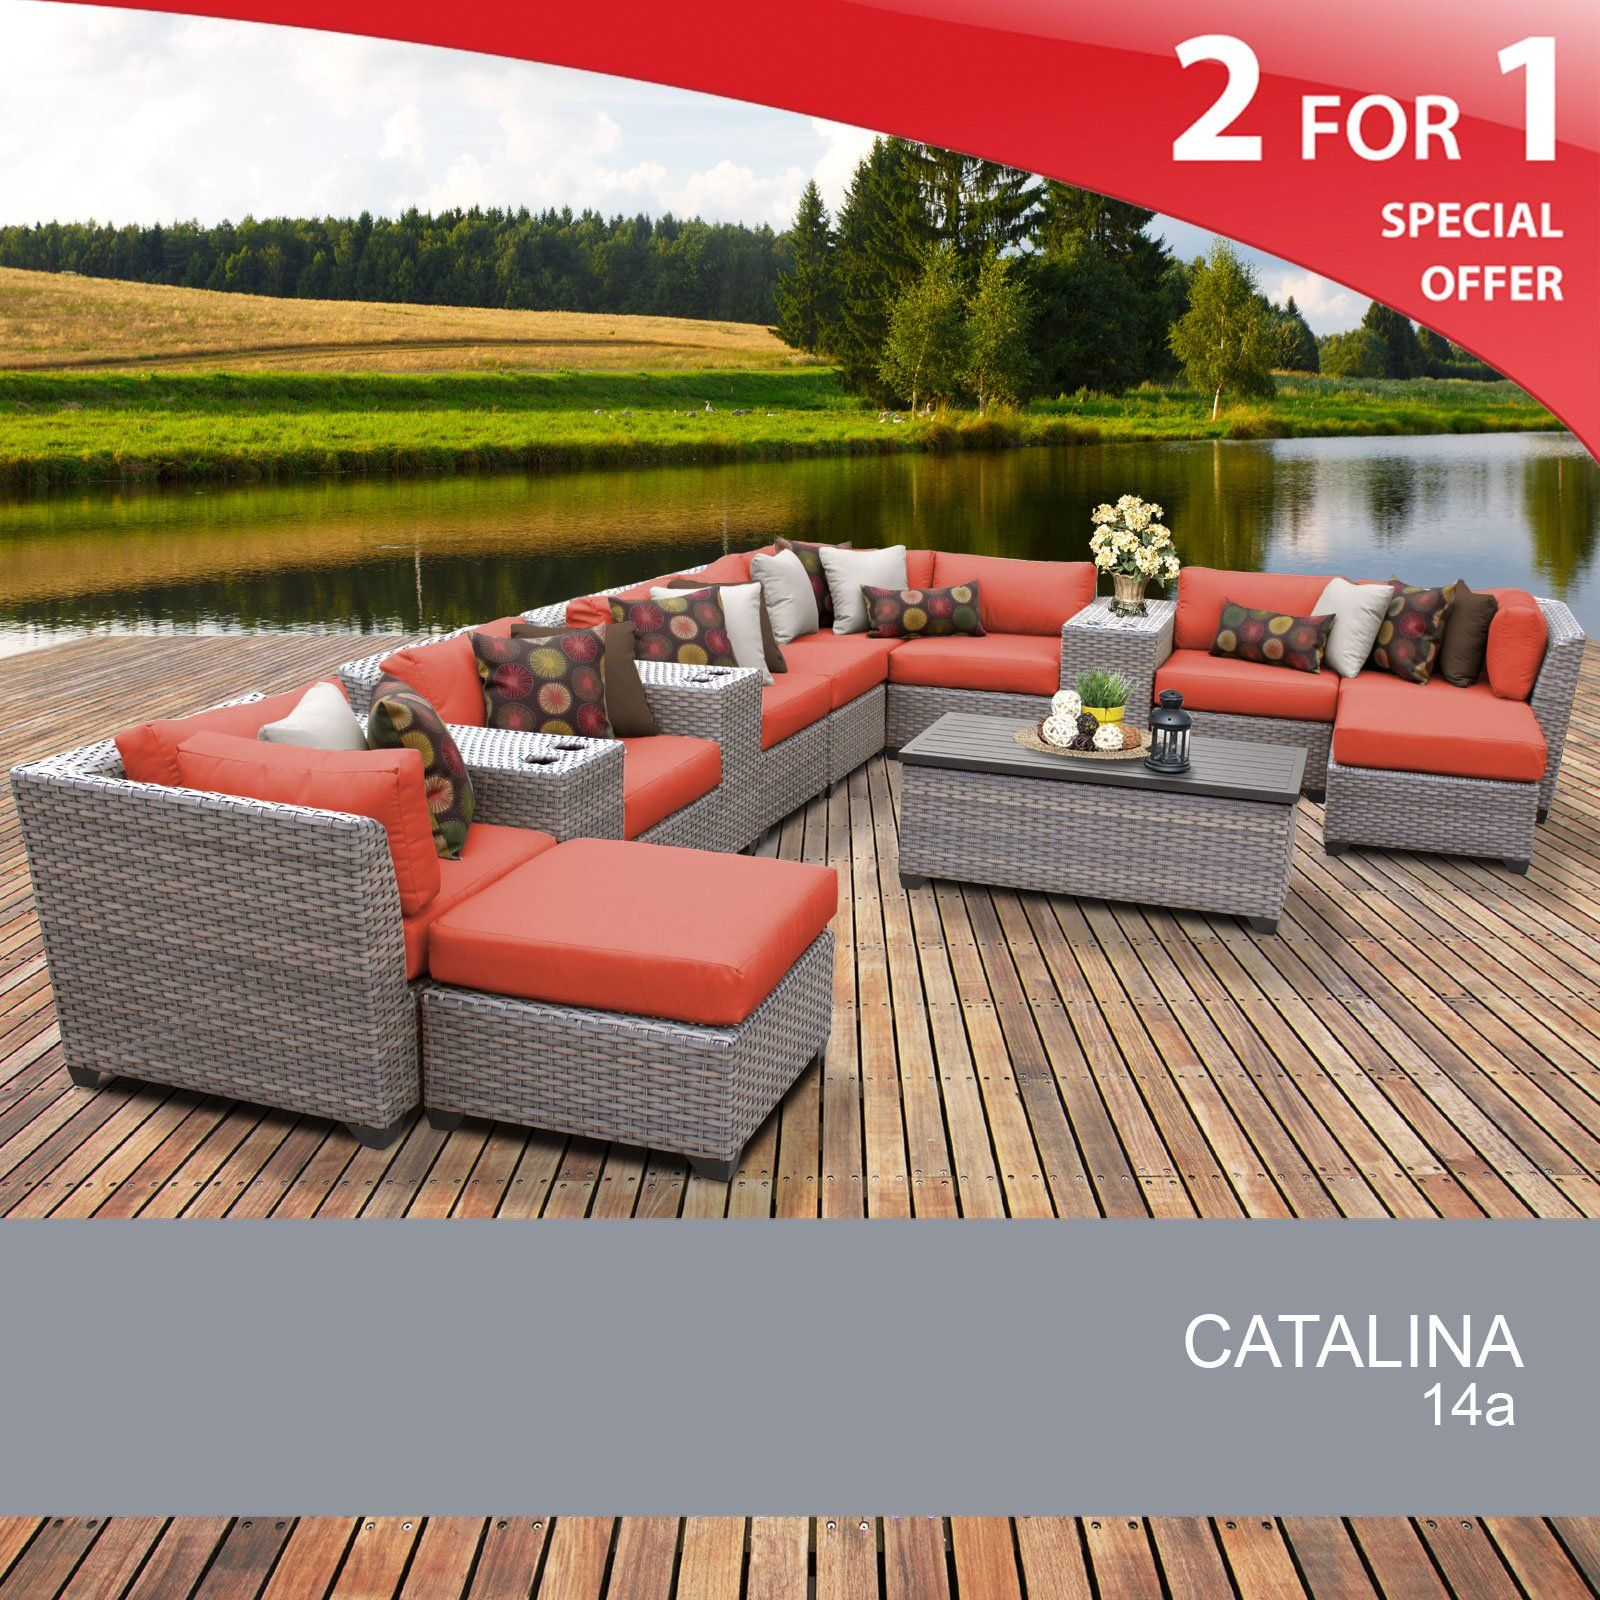 Catalina 45 Piece Outdoor Wicker Patio Furniture Set 45a. FULLY ...